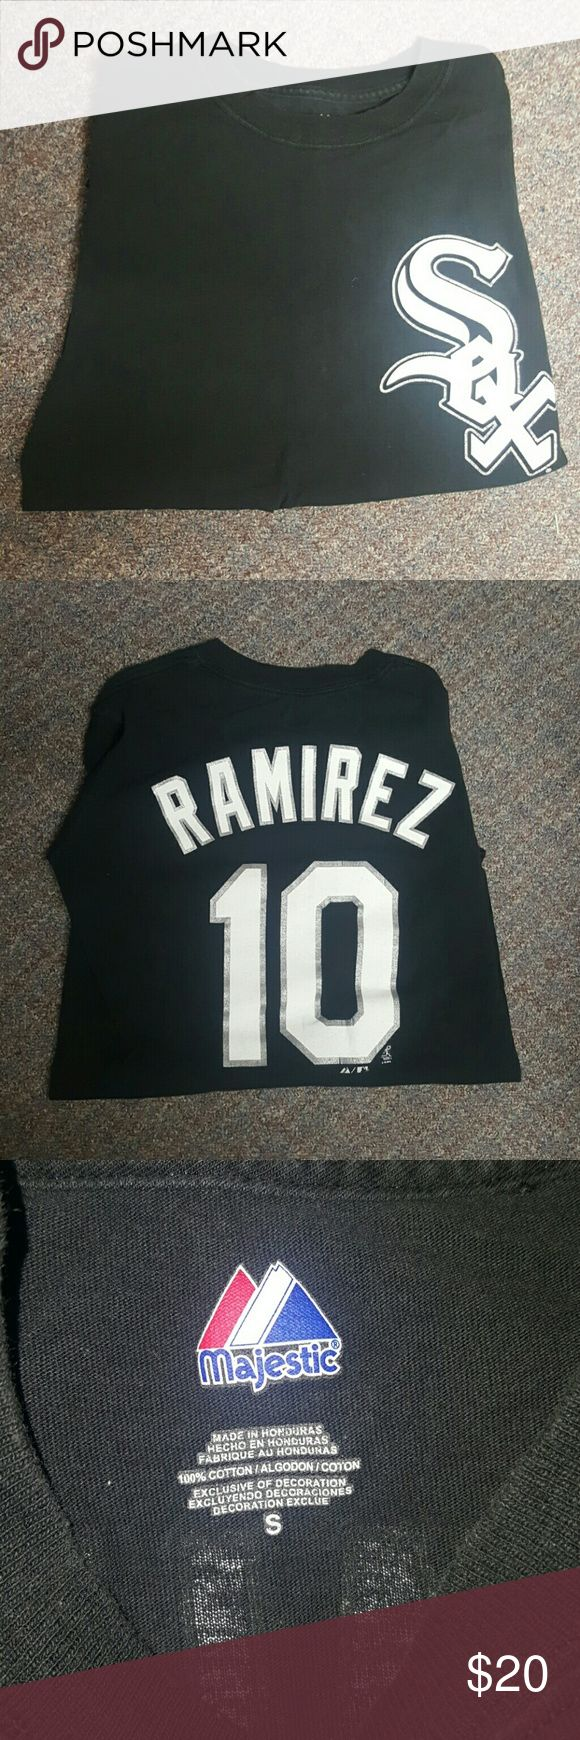 Chicago White Sox Alexei Ramirez T-Shirt Very good condition! Fits true to size! Absolutely no flaws! Great tshirt! Great for the biggest Chicago White Sox fans! Majestic Shirts Tees - Short Sleeve